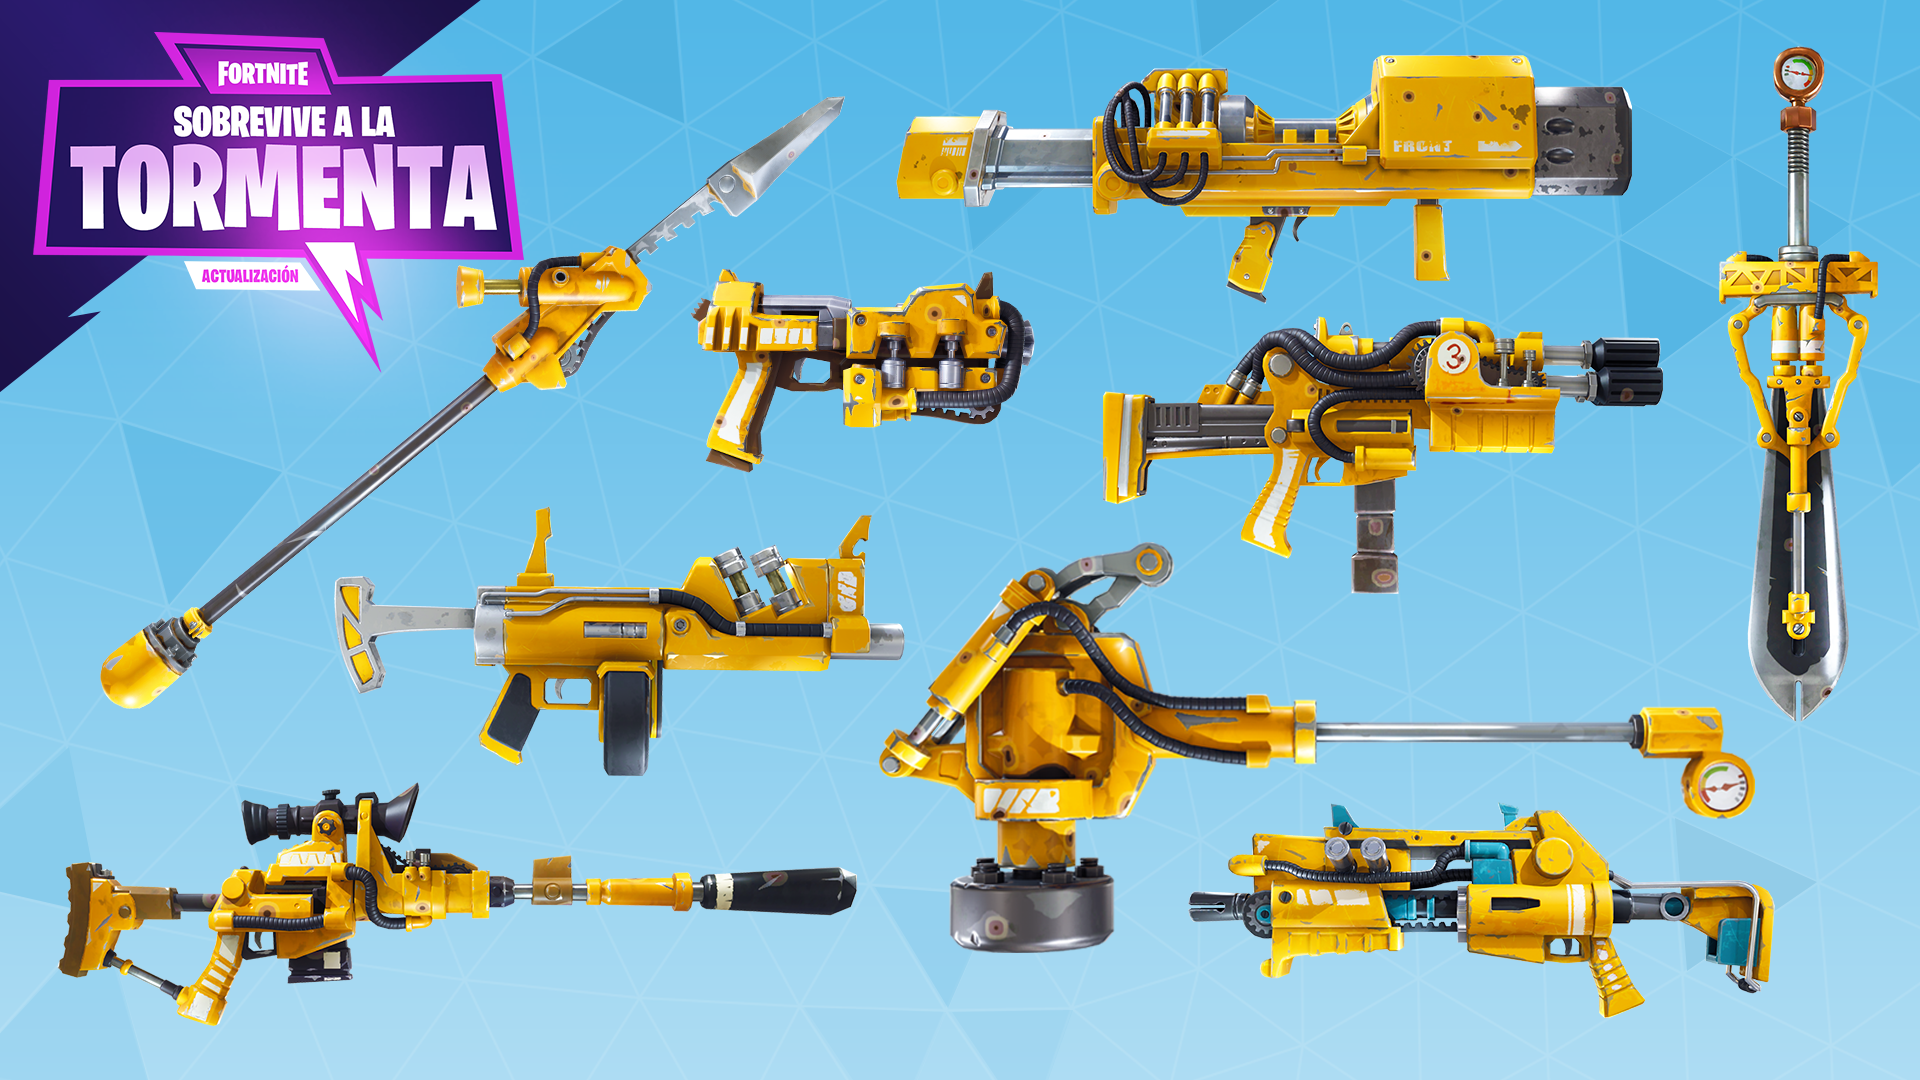 Fortnite%2Fblog%2Fsurvive-the-storm---release-notes%2FES_Hydraulic-Weapons-1920x1080-14026e18b707eabc18699faf032298ec0a4ecd0c